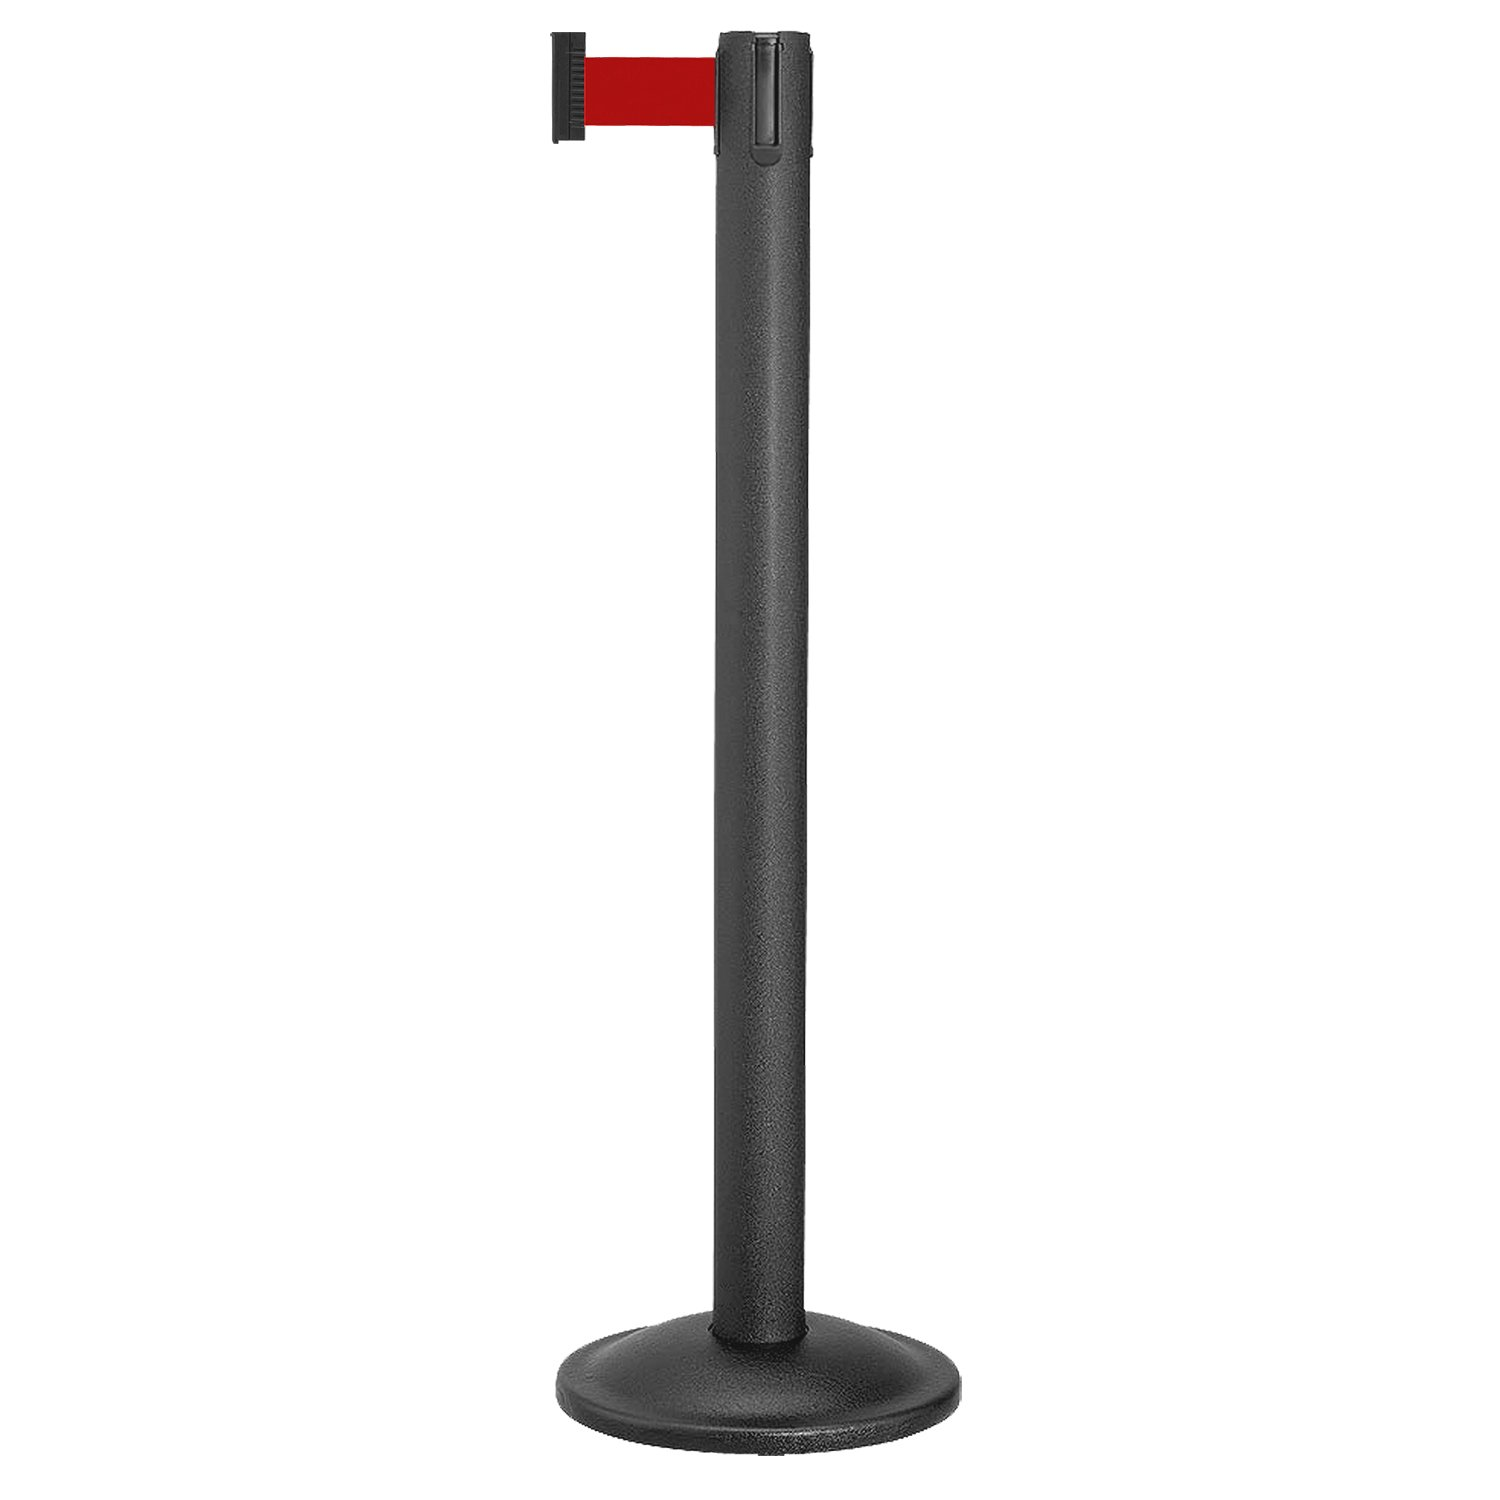 Beltrac Retractable Belt Stanchion for queue lines, Wrinkle Black Post with 7 foot Red Belt.